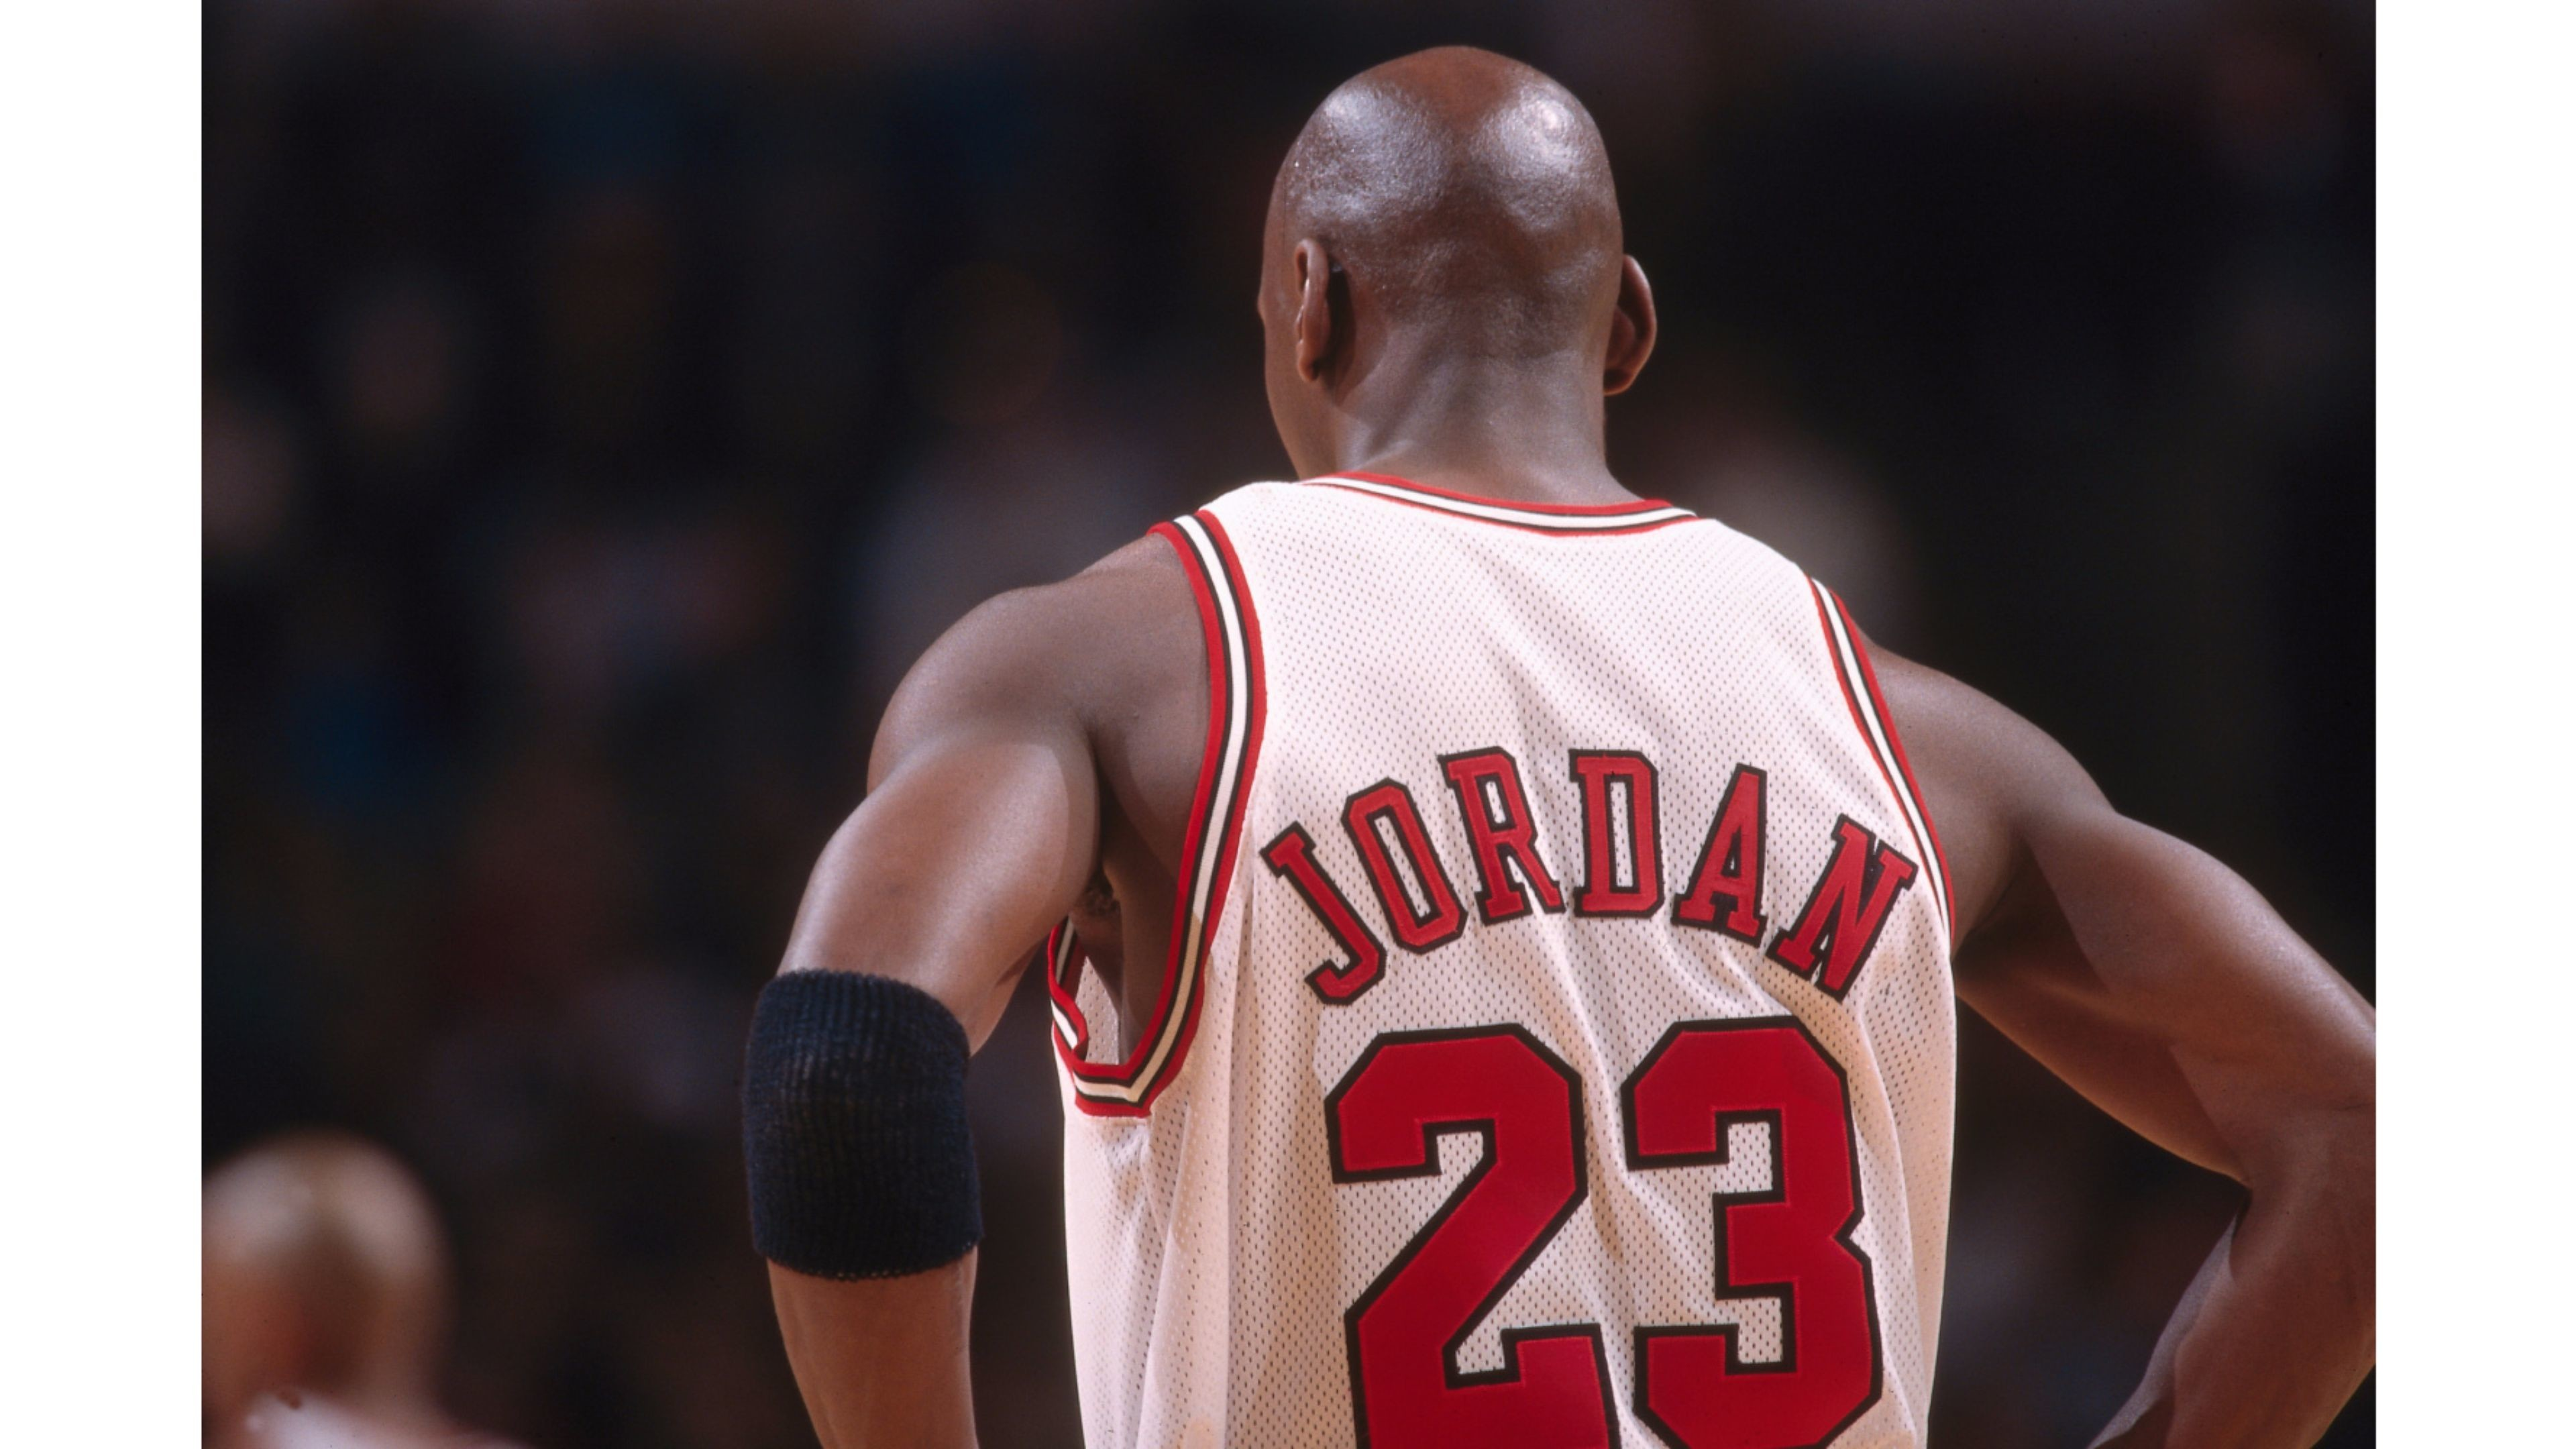 Michael Jordan 23 Wallpaper: Michael Jordan Live Wallpaper (67+ Images